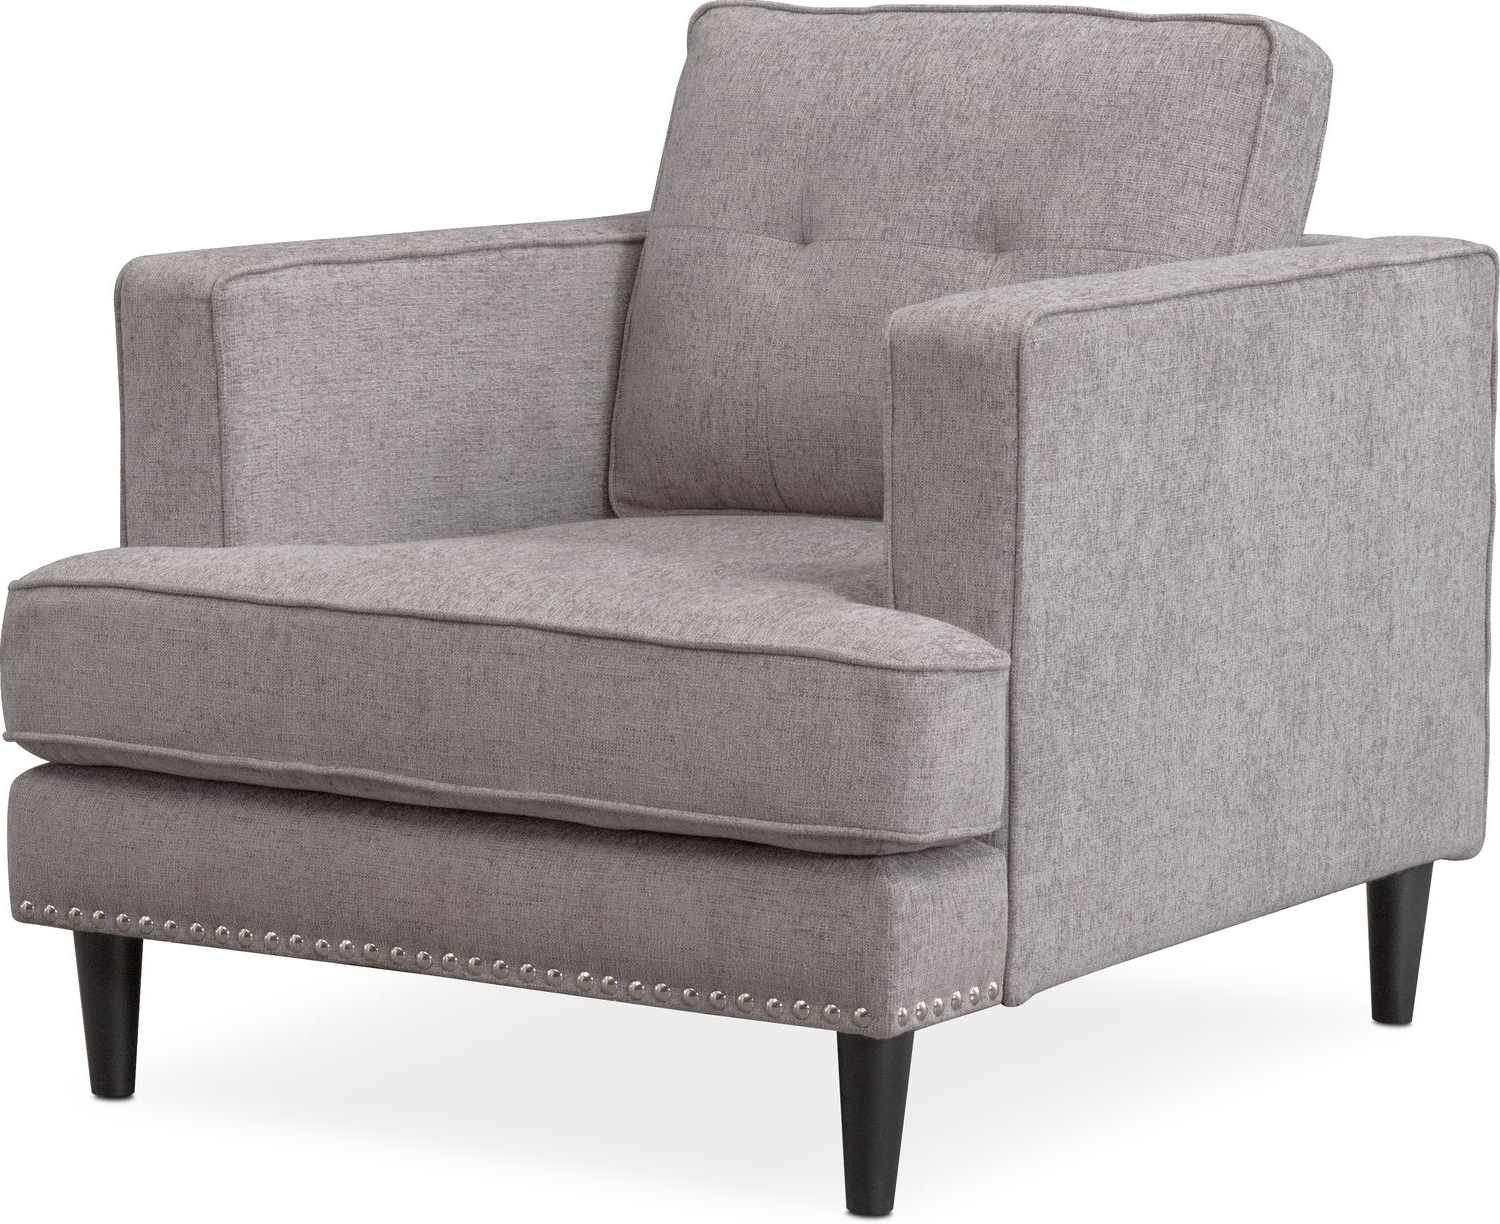 2018 Parker Sofa, Chair And Ottoman Set (Gallery 11 of 20)